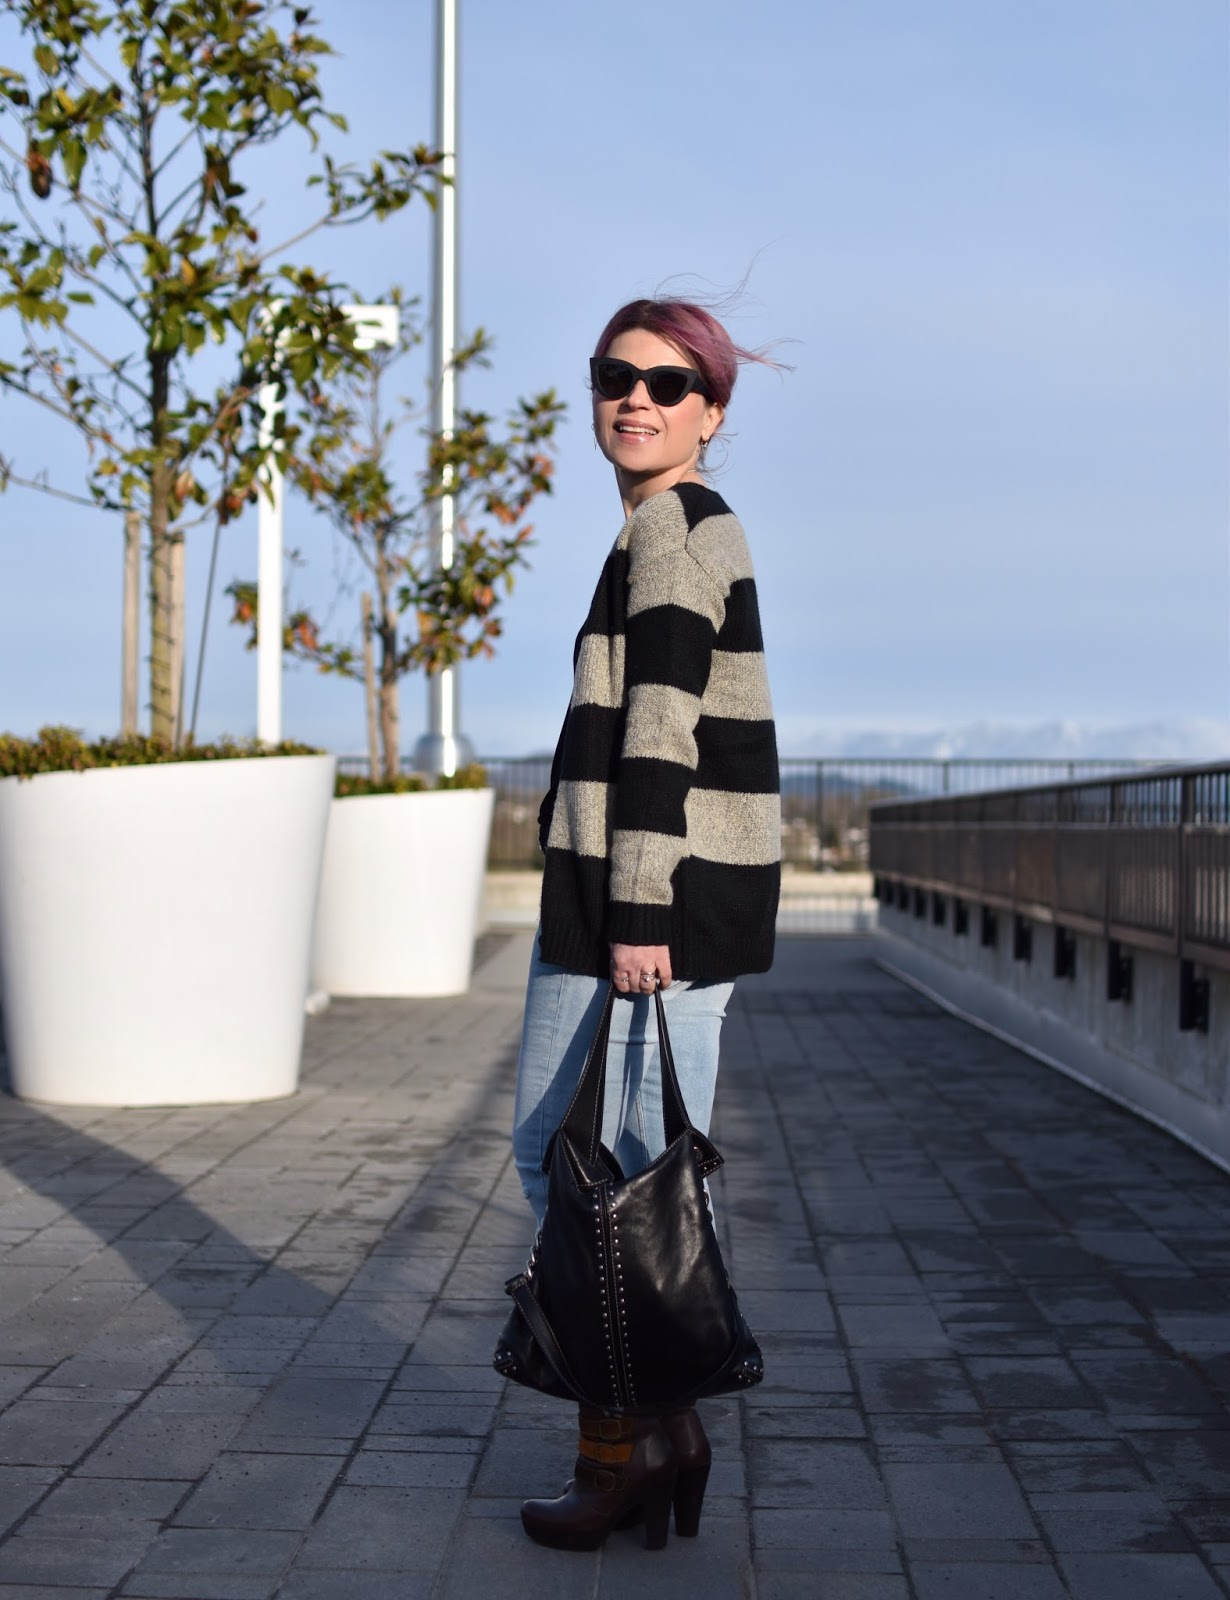 Monika Faulkner outfit inspiration - styling a striped grandpa cardigan with distressed skinny jeans, platform booties, and cat-eye sunnies